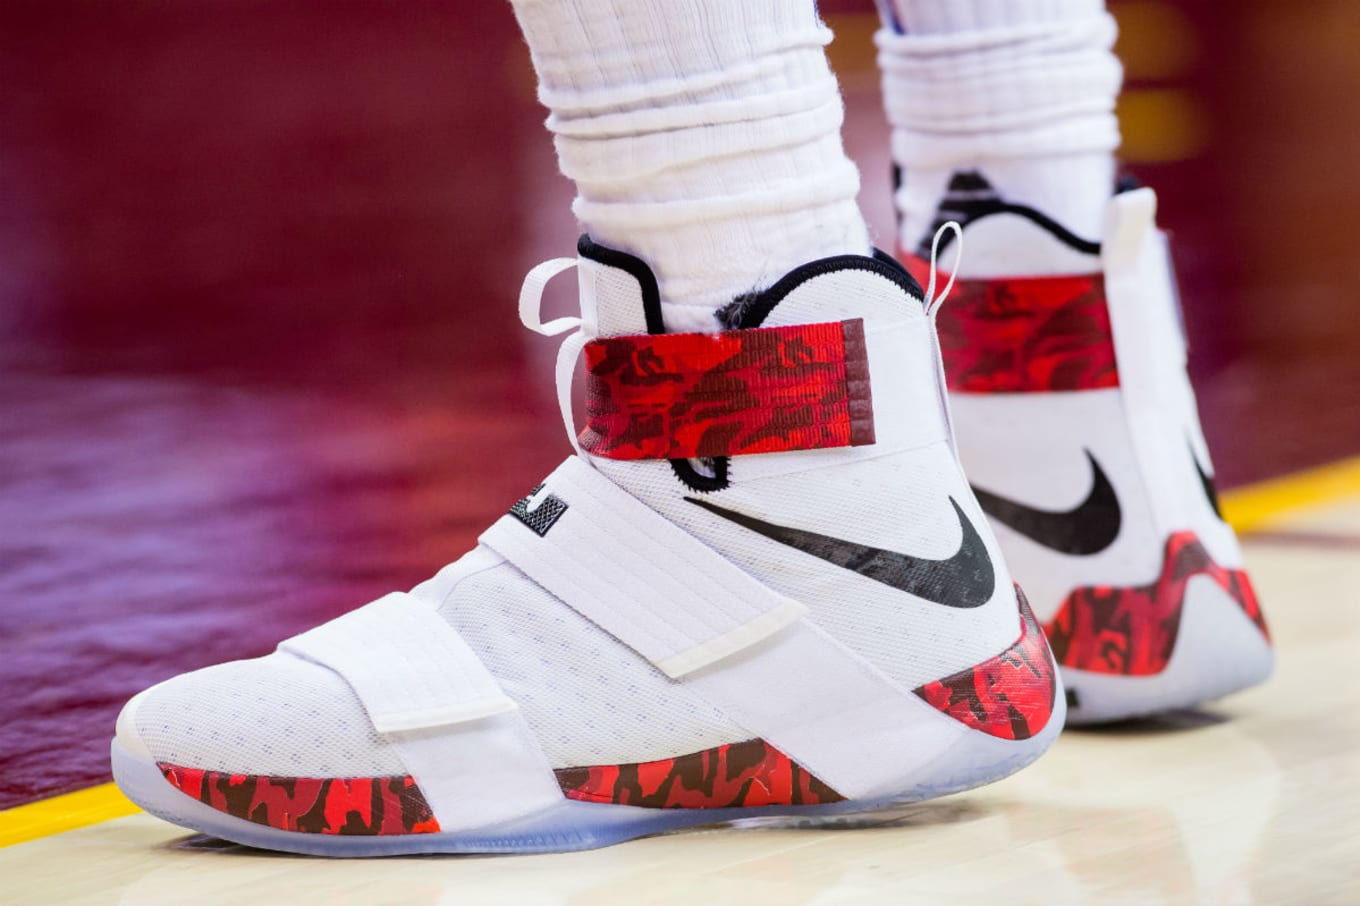 293df3671d88 LeBron James Nike LeBron Soldier 10 White Red Camo